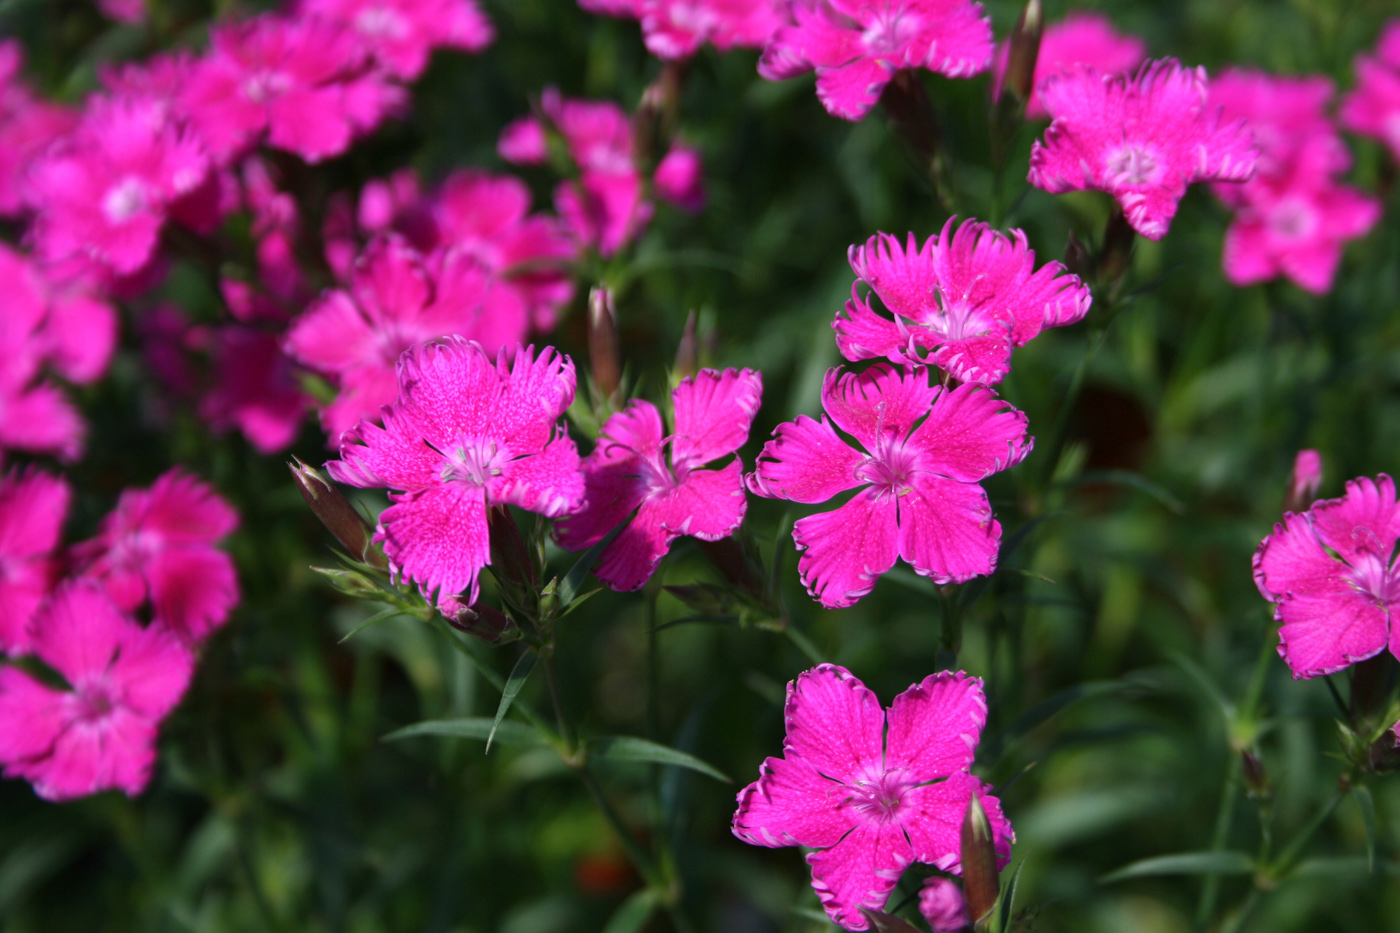 Grow pinks for an easy pretty garden mississippi state university the flowers of bouquet purple dianthus are a vivid dark pink with petals having tattered mightylinksfo